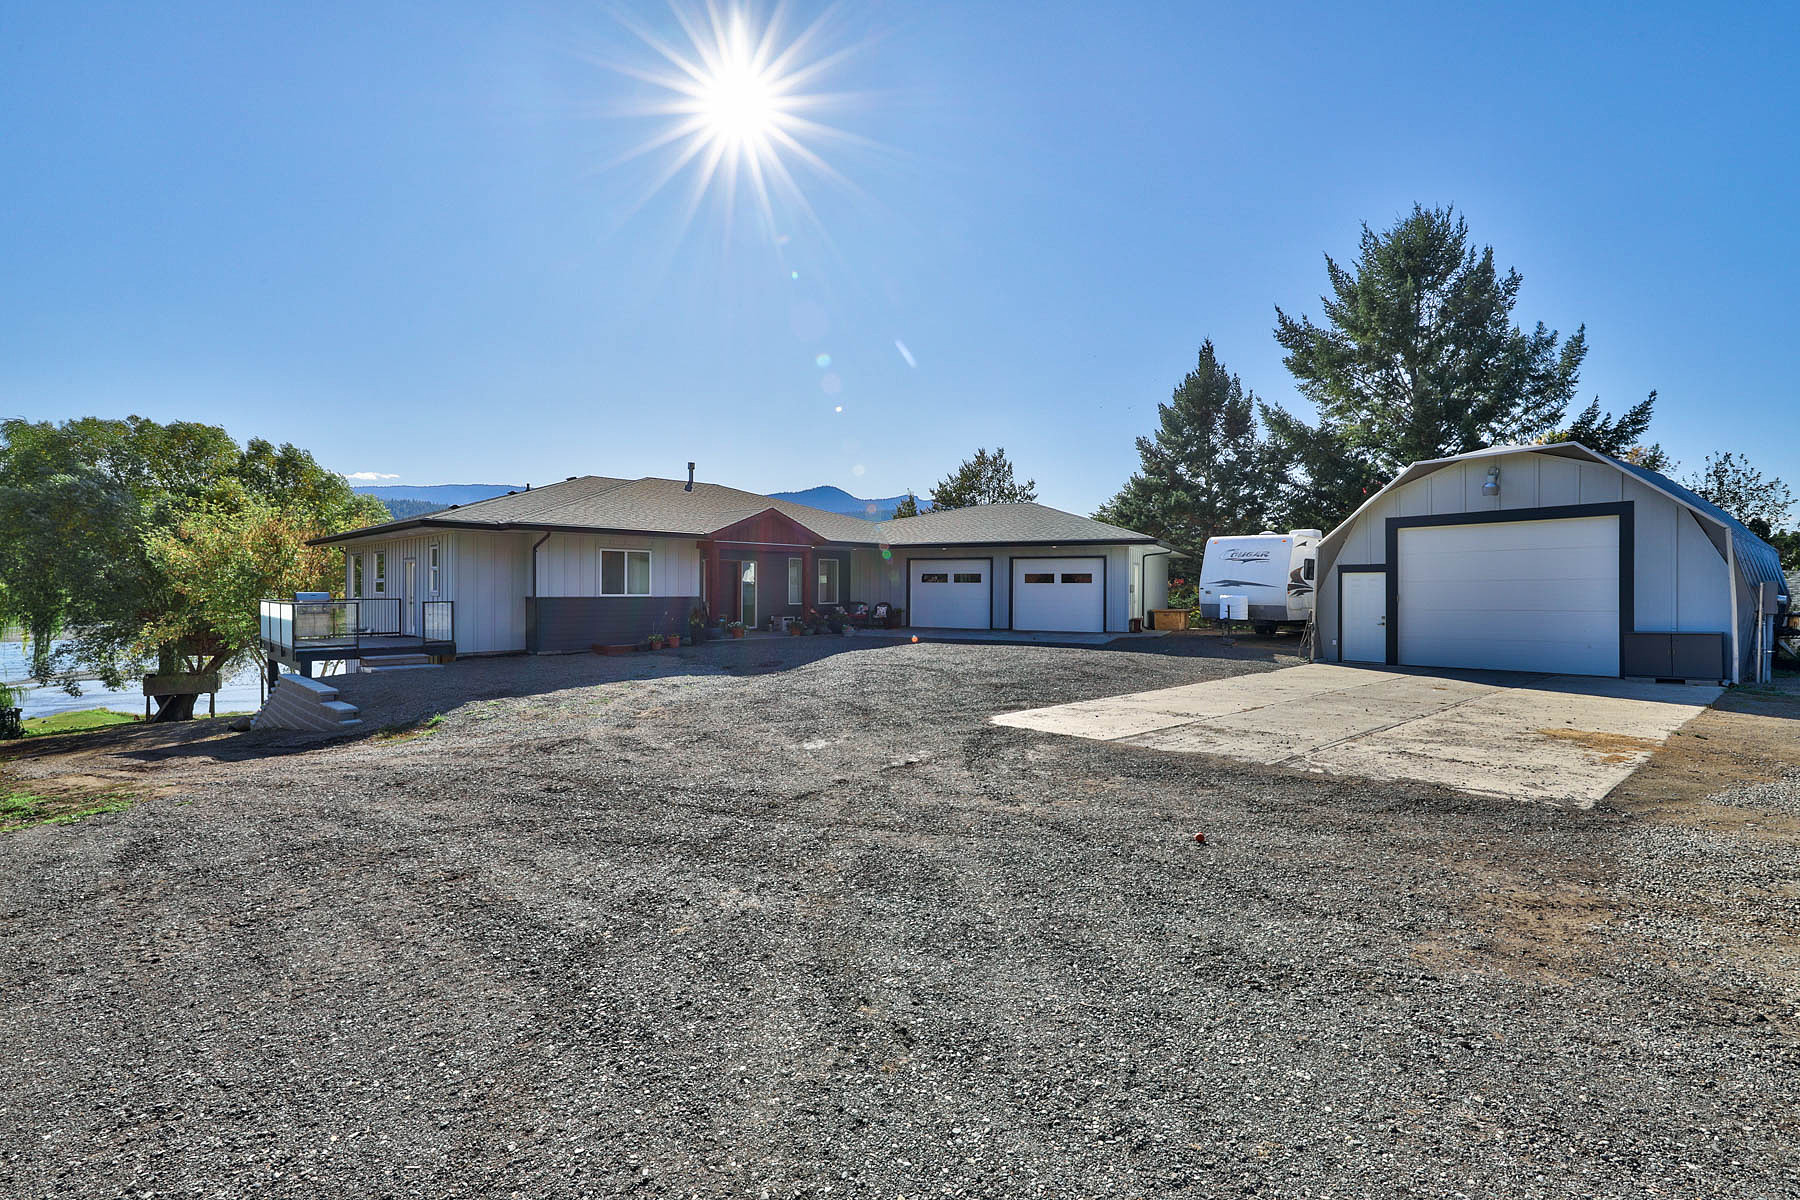 Single Family Homes for Sale at Riverfront Acreage 3770 Shuswap Road East Kamloops, British Columbia V2H 1S6 Canada